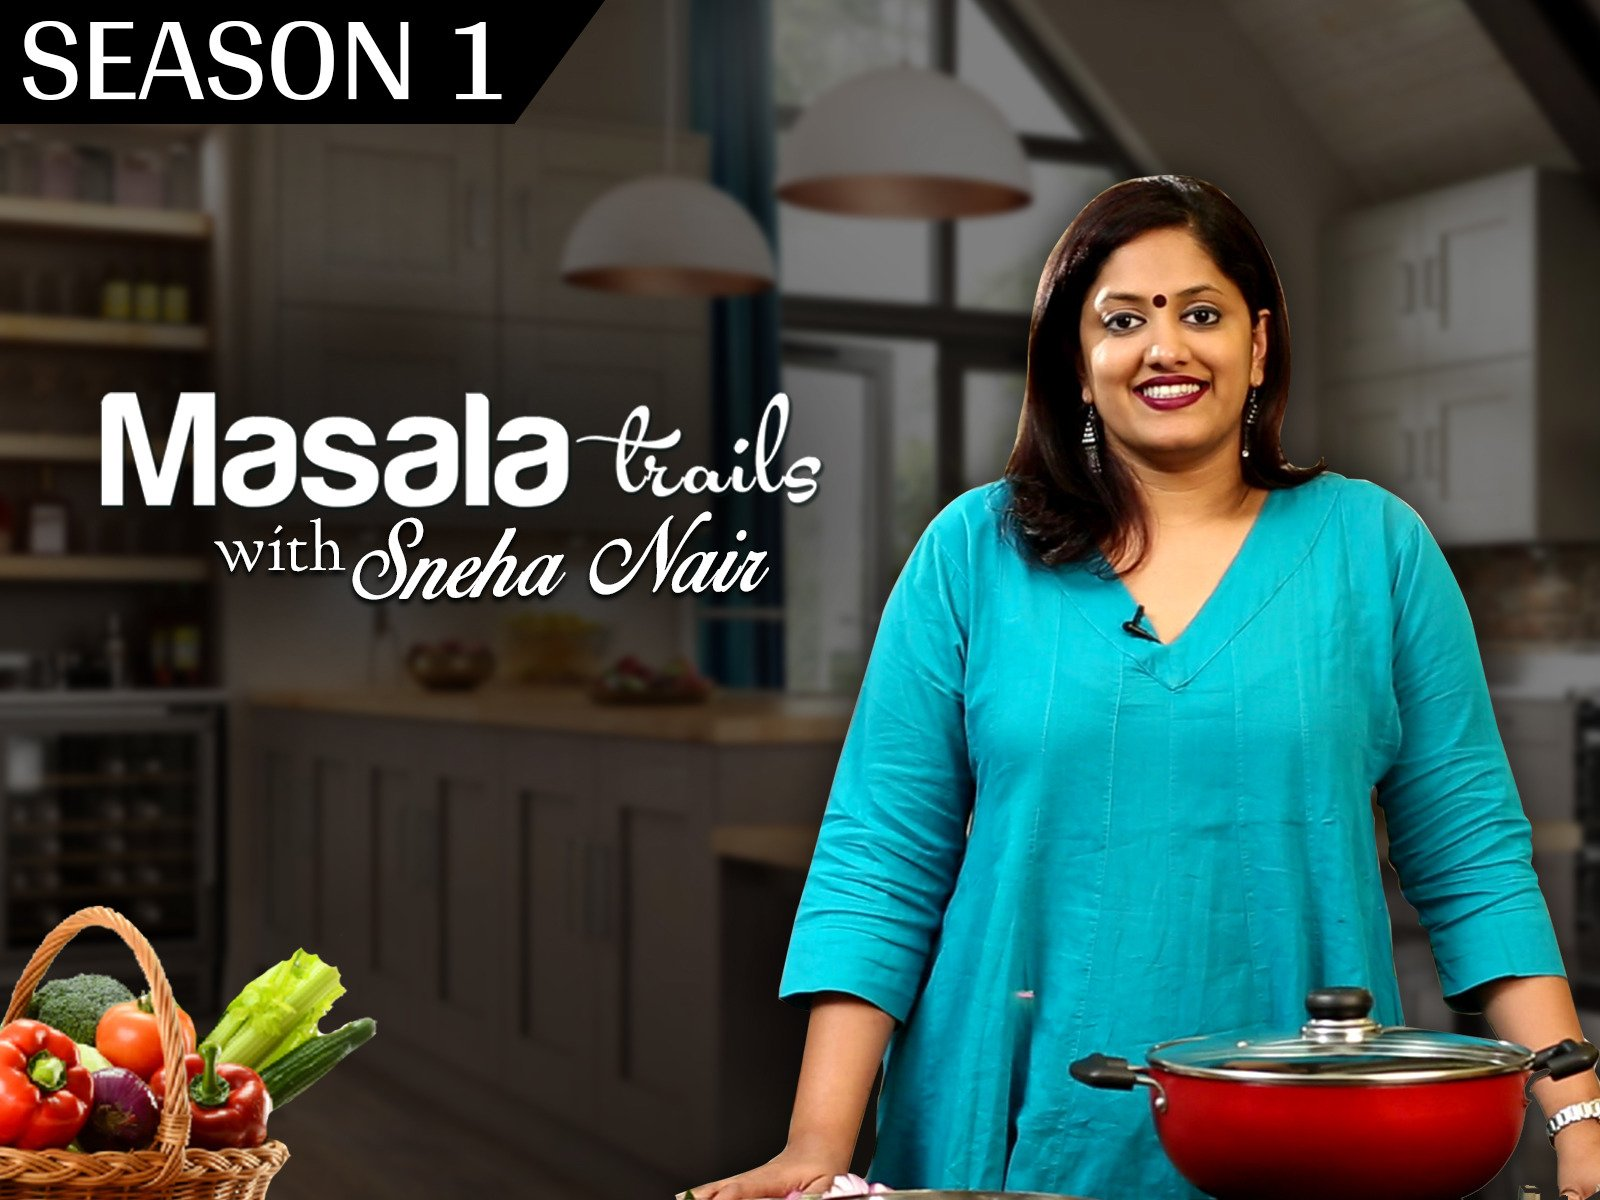 Clip: Masala Trails With Sneha Nair - Season 1